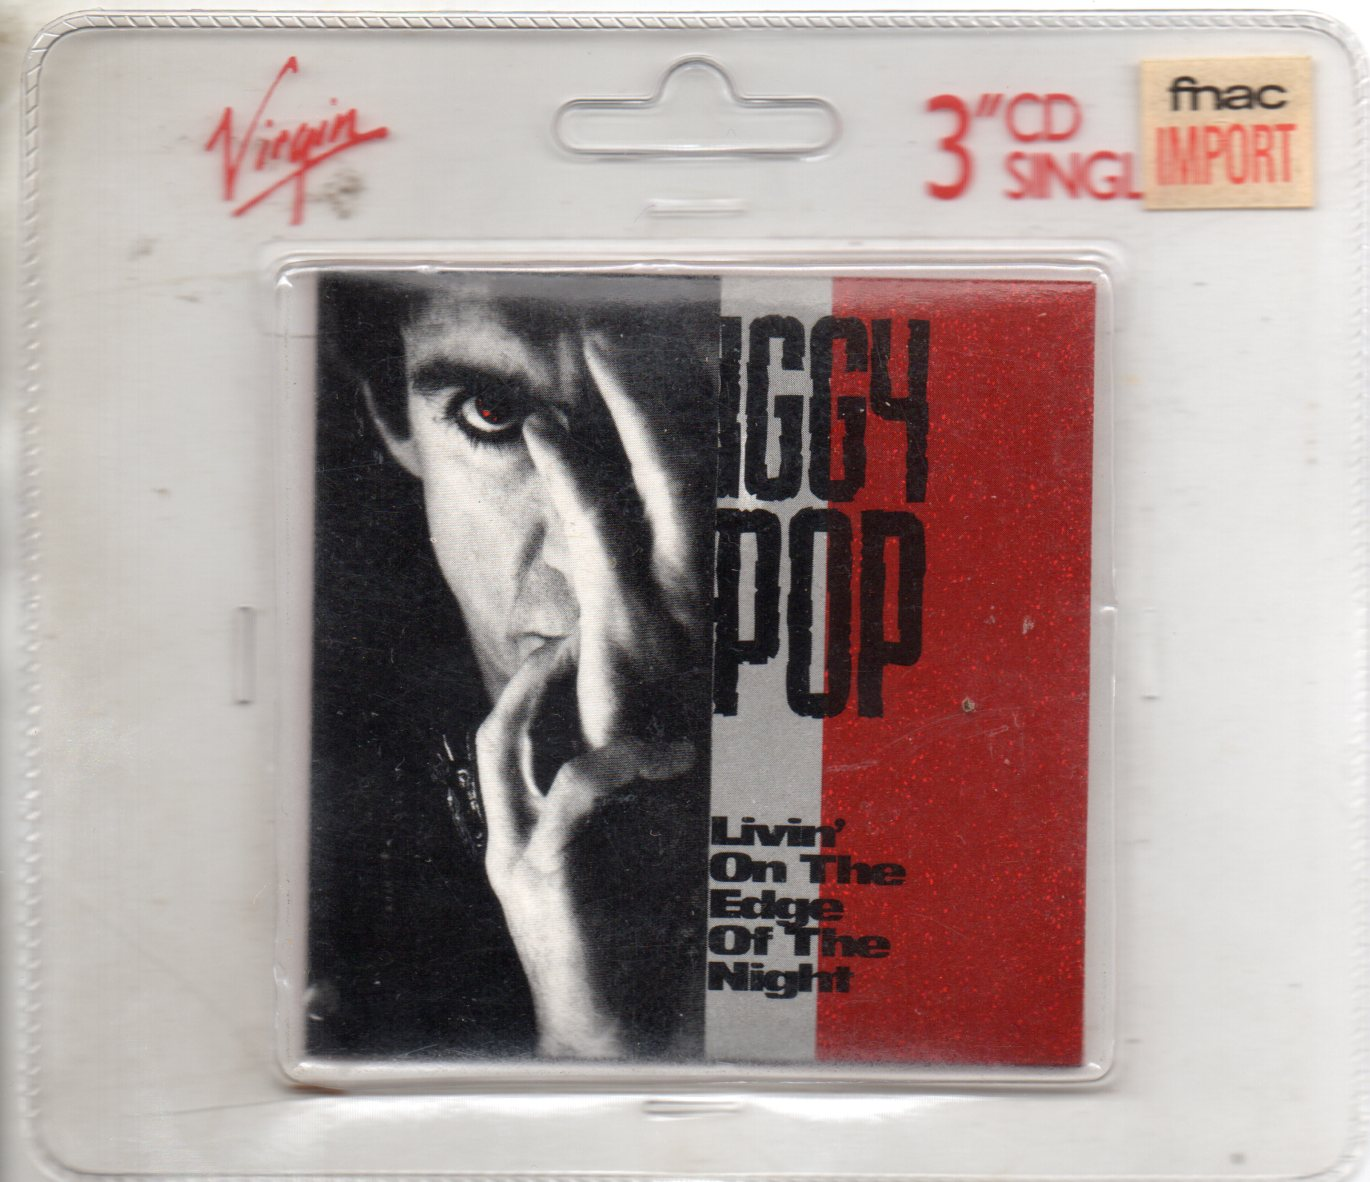 POP, IGGY - Livin' On The Edge Of The Night - U.s. Promo Issue - Edit 3:08/3:38